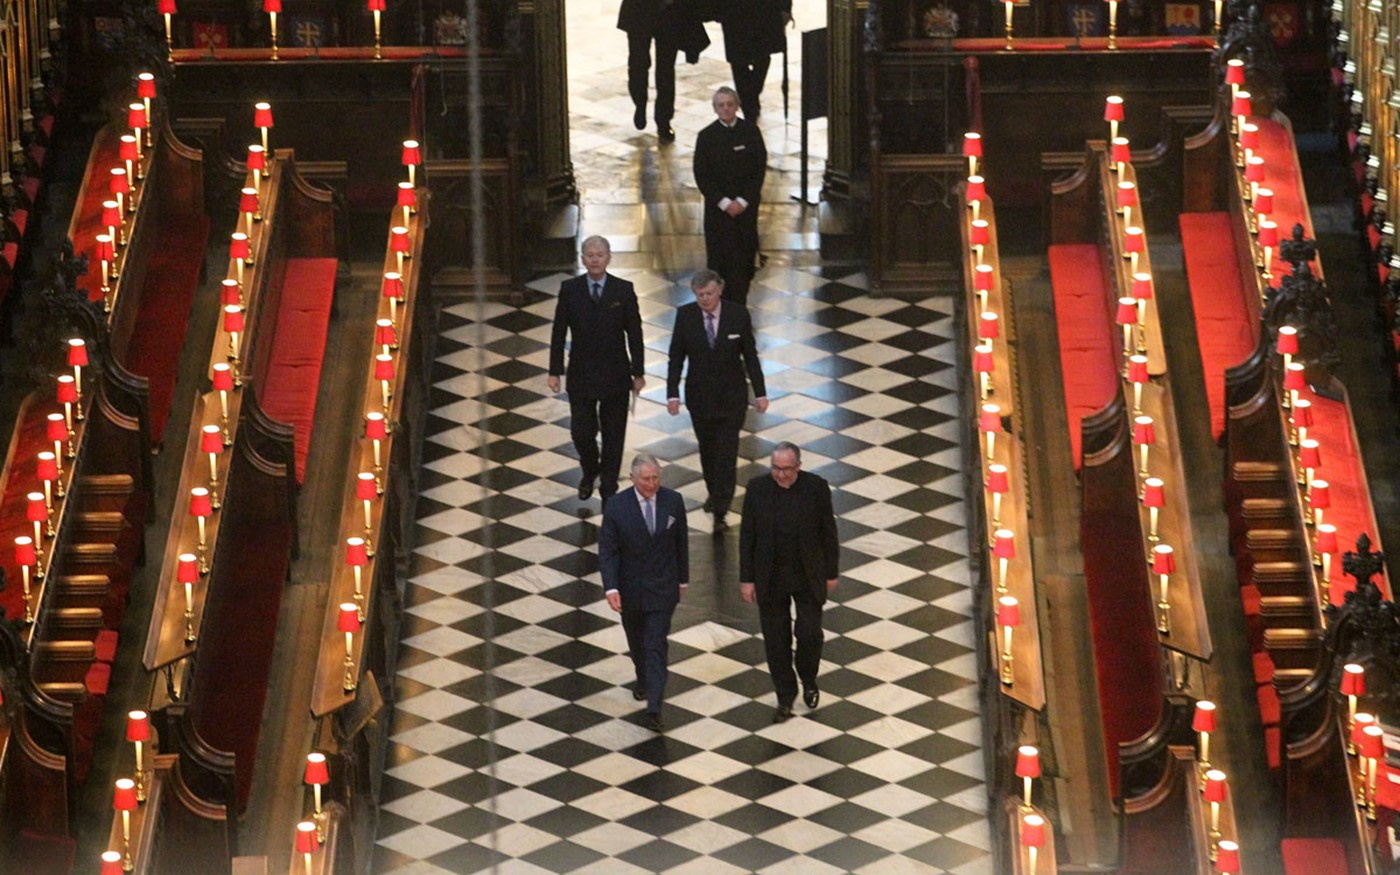 HRH The Prince of Wales walks through the Quire at Westminster Abbey with the Very Reverend Dr John Hall, the Dean of Westminster